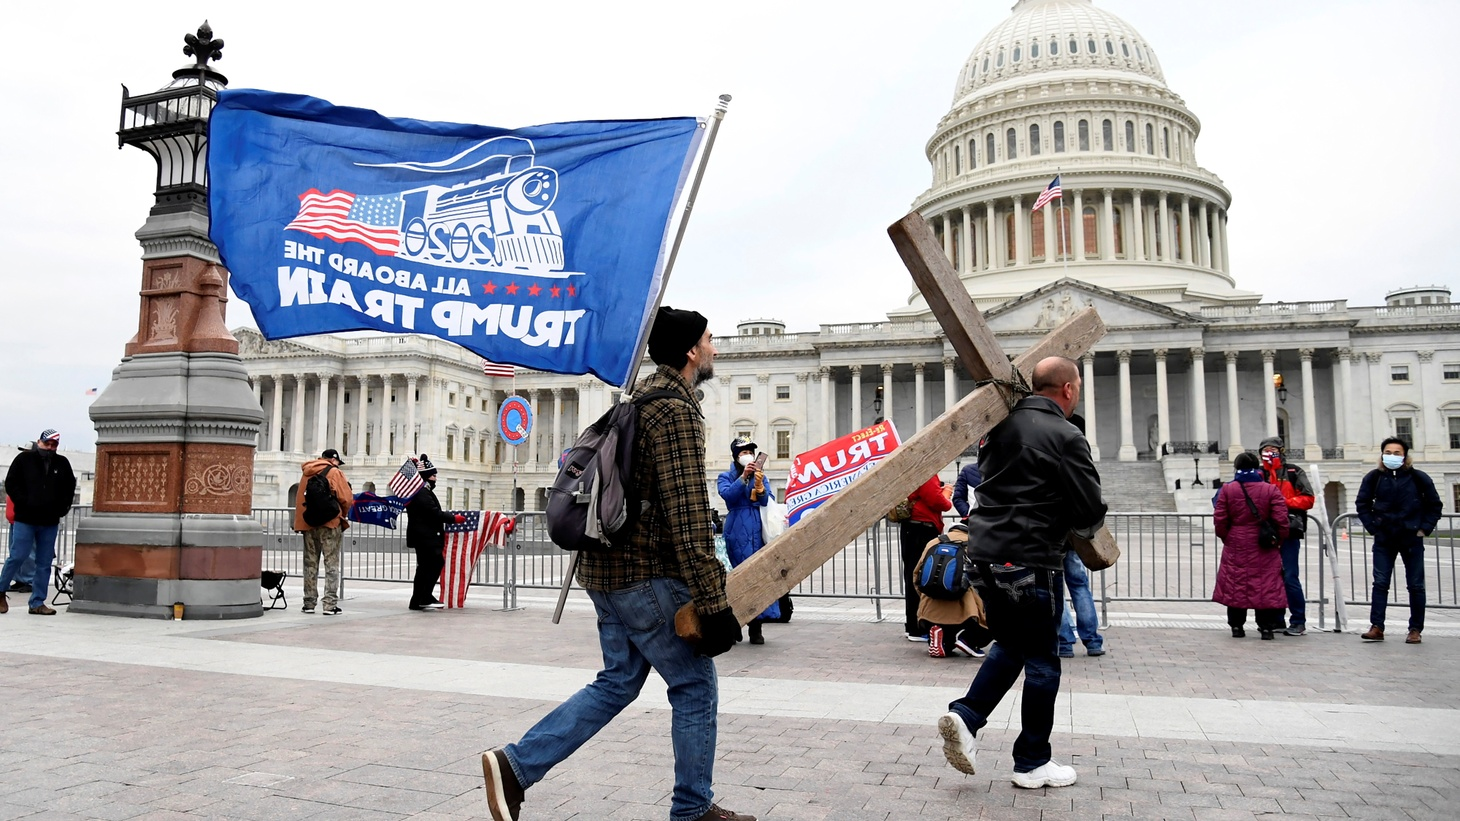 Jeremy LaPointe of Lumberton, Texas (R) carries a cross to a gathering of U.S. President Donald Trump supporters, outside the U.S. Capitol where Congress will meet in joint session to certify the electoral college vote for President-elect Joe Biden, in Washington, U.S., January 6, 2021.